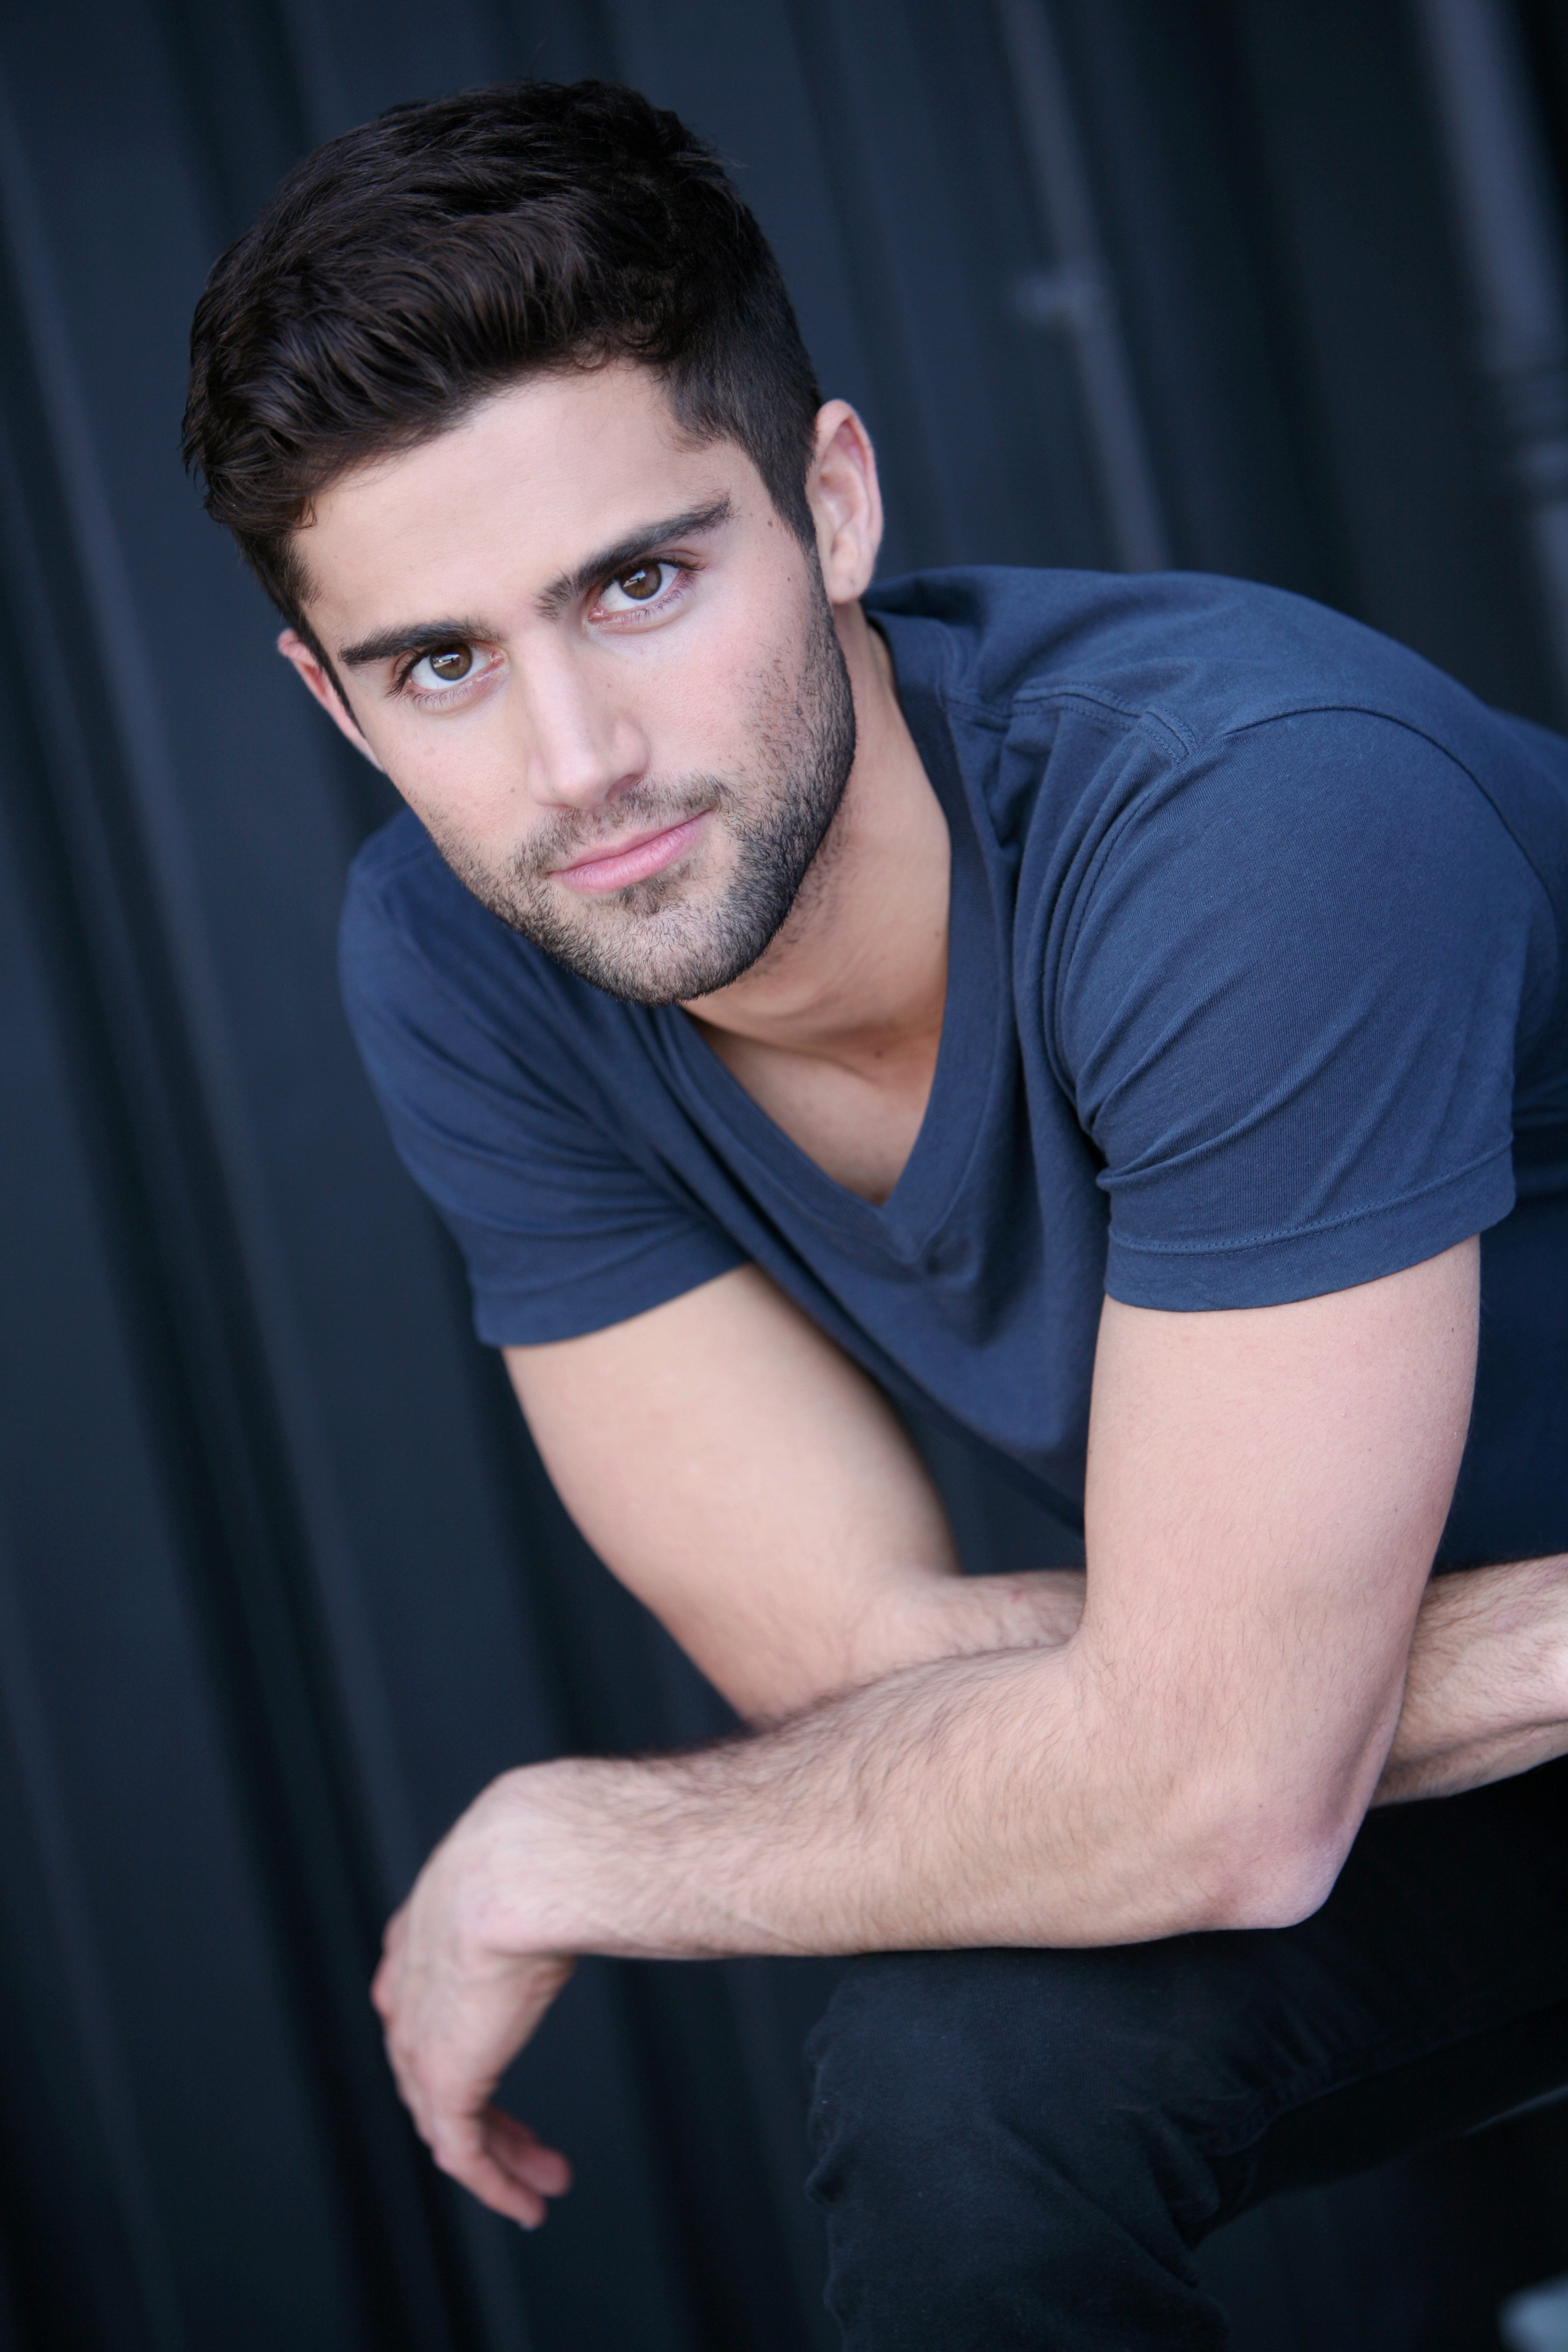 max ehrichmax ehrich instagram, max ehrich, max ehrich twitter, max ehrich chris colfer, max ehrich in high school musical, max ehrich facebook, max ehrich chris colfer twitter, max ehrich biography, max ehrich icarly, max ehrich age, max ehrich and veronica dunne, max ehrich imdb, max ehrich singing